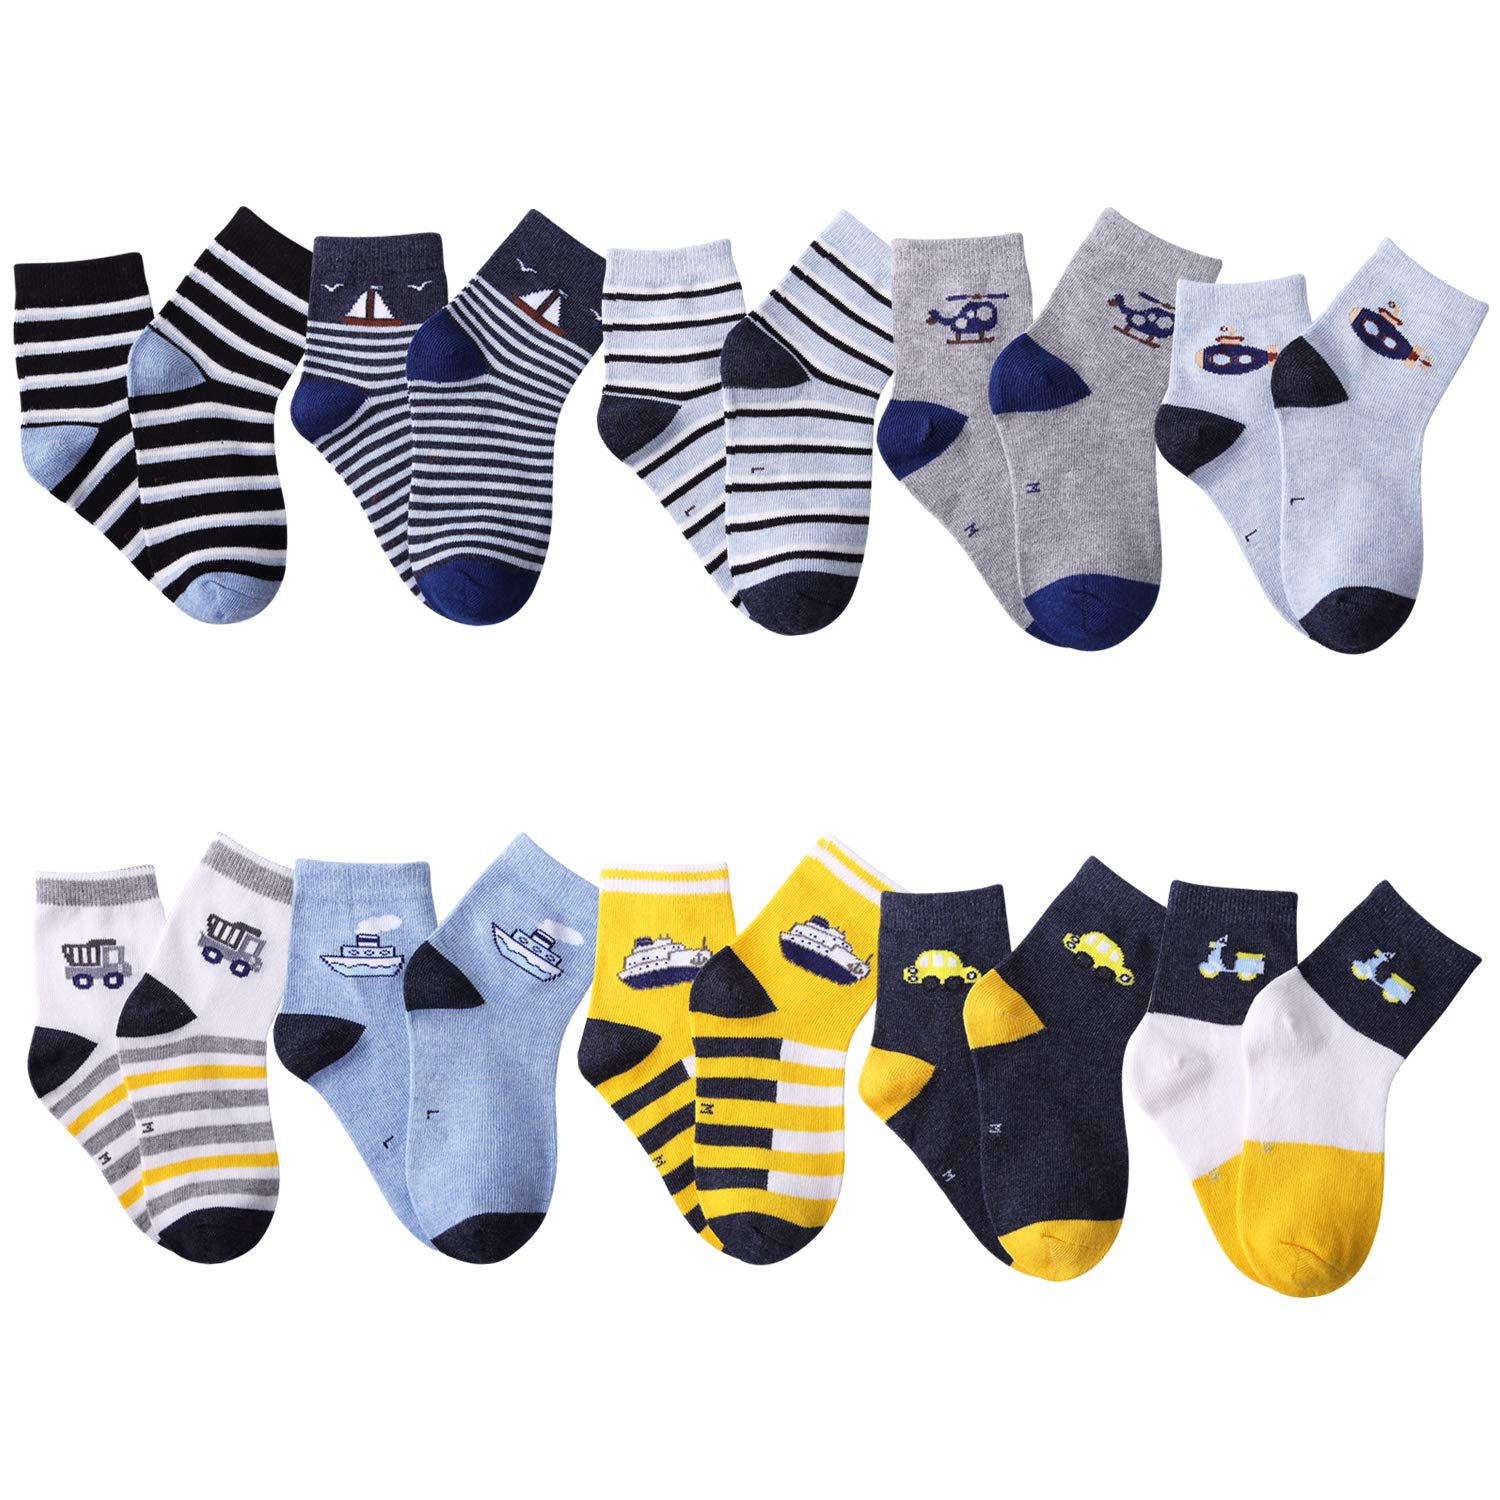 10 Pairs Kids Boys Socks Colorful Novelty Fashion Cotton